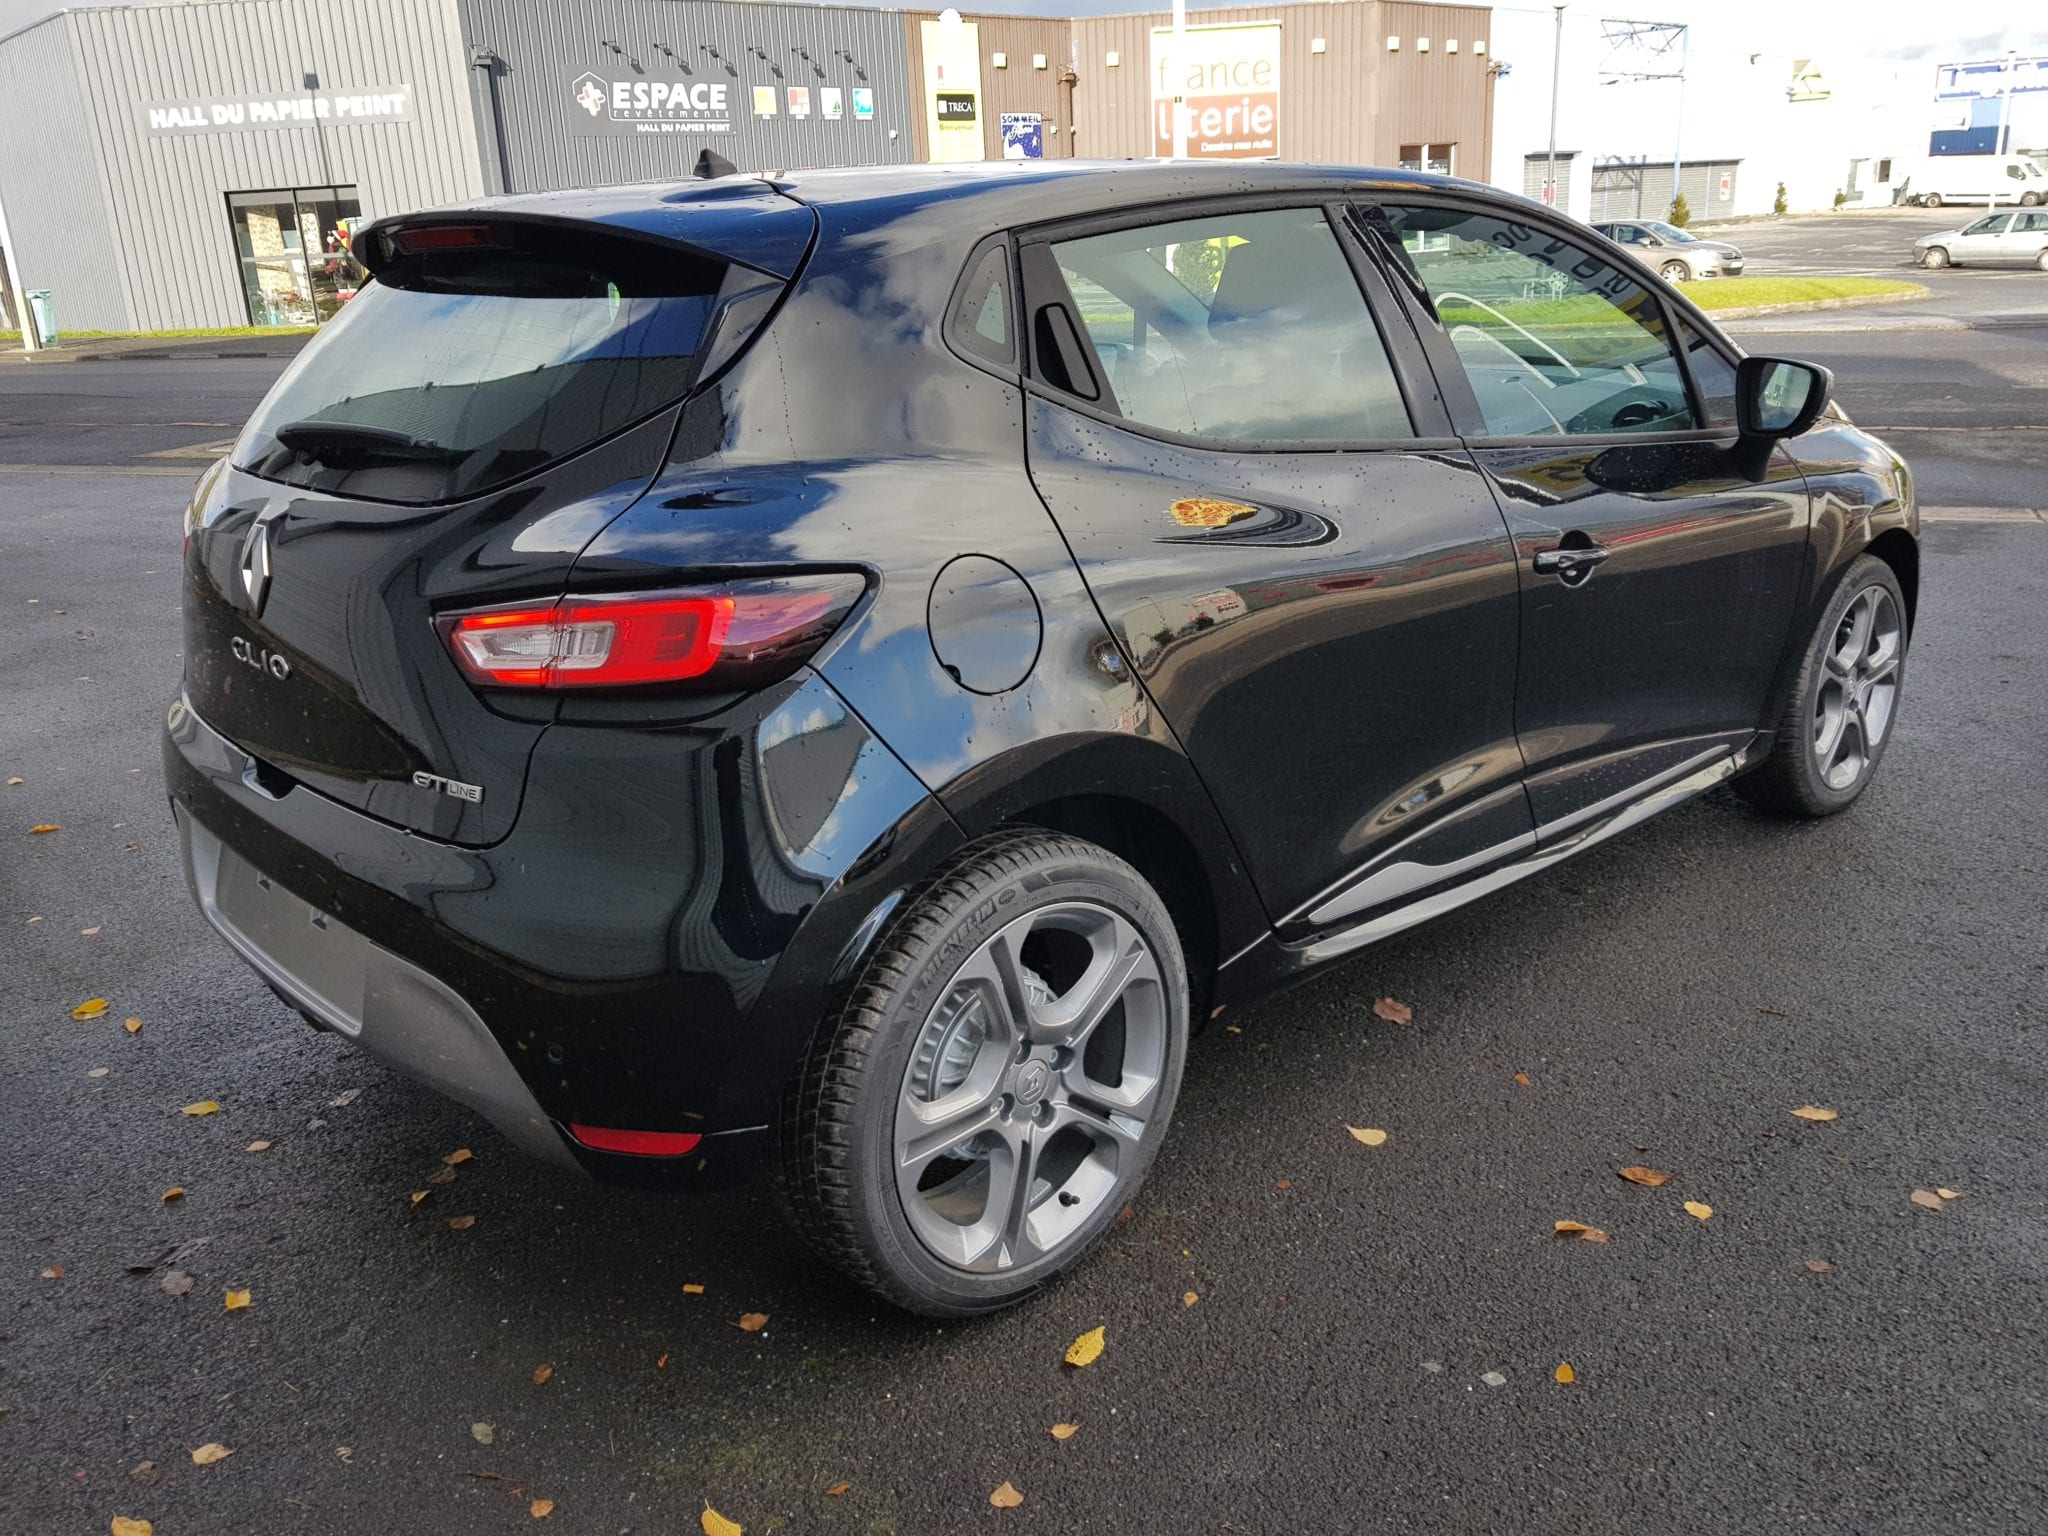 RENAULT NV CLIO 4 TCE 90 ENERGY GT-LINE - Image 2